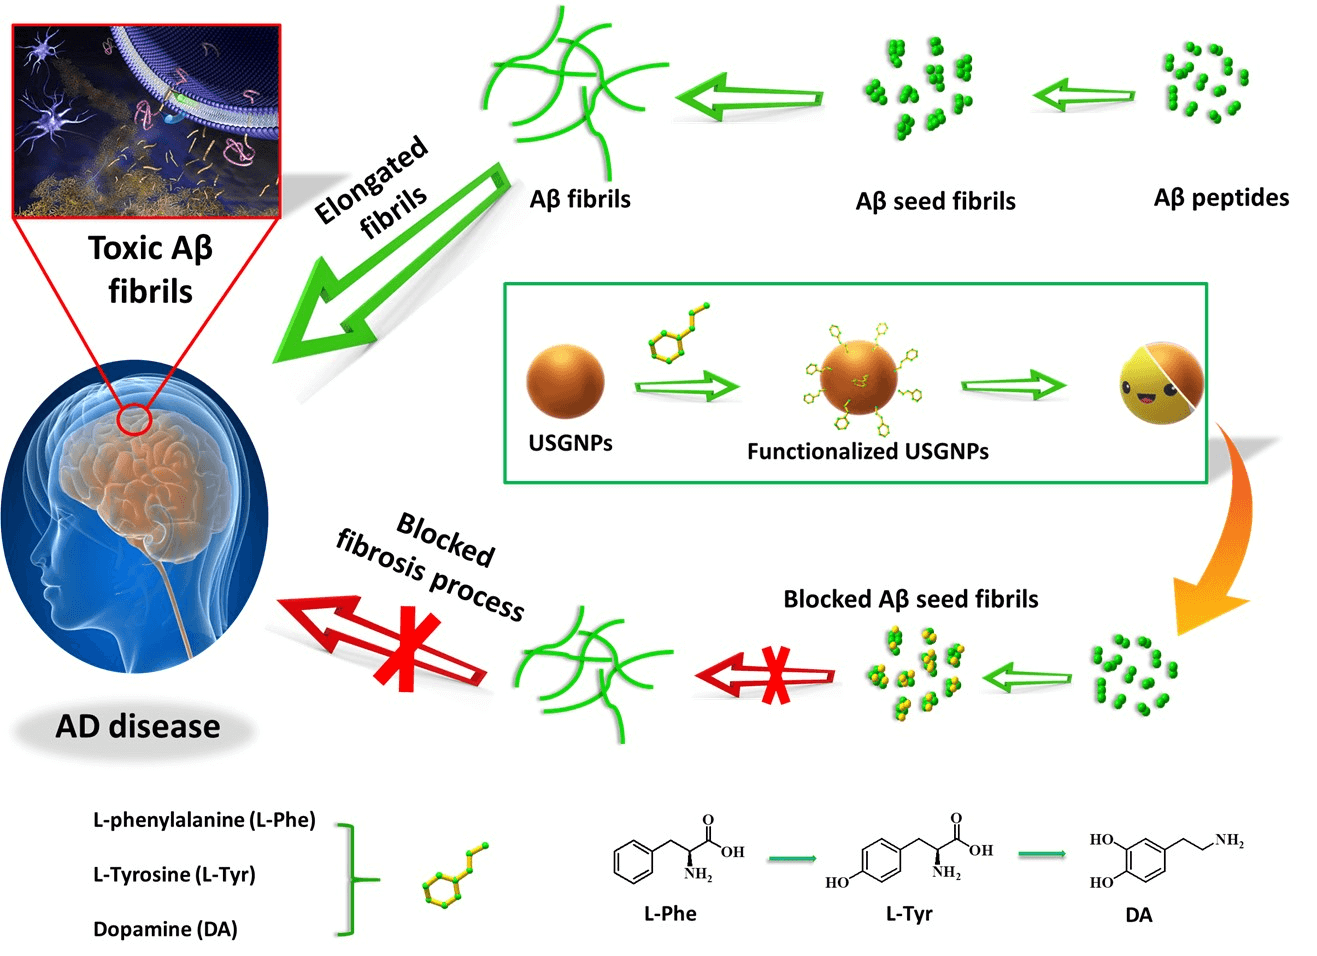 Attenuation of the Aggregation and Neurotoxicity of Amyloid Peptides with Neurotransmitter-Functionalized Ultra-Small-Sized Gold Nanoparticles